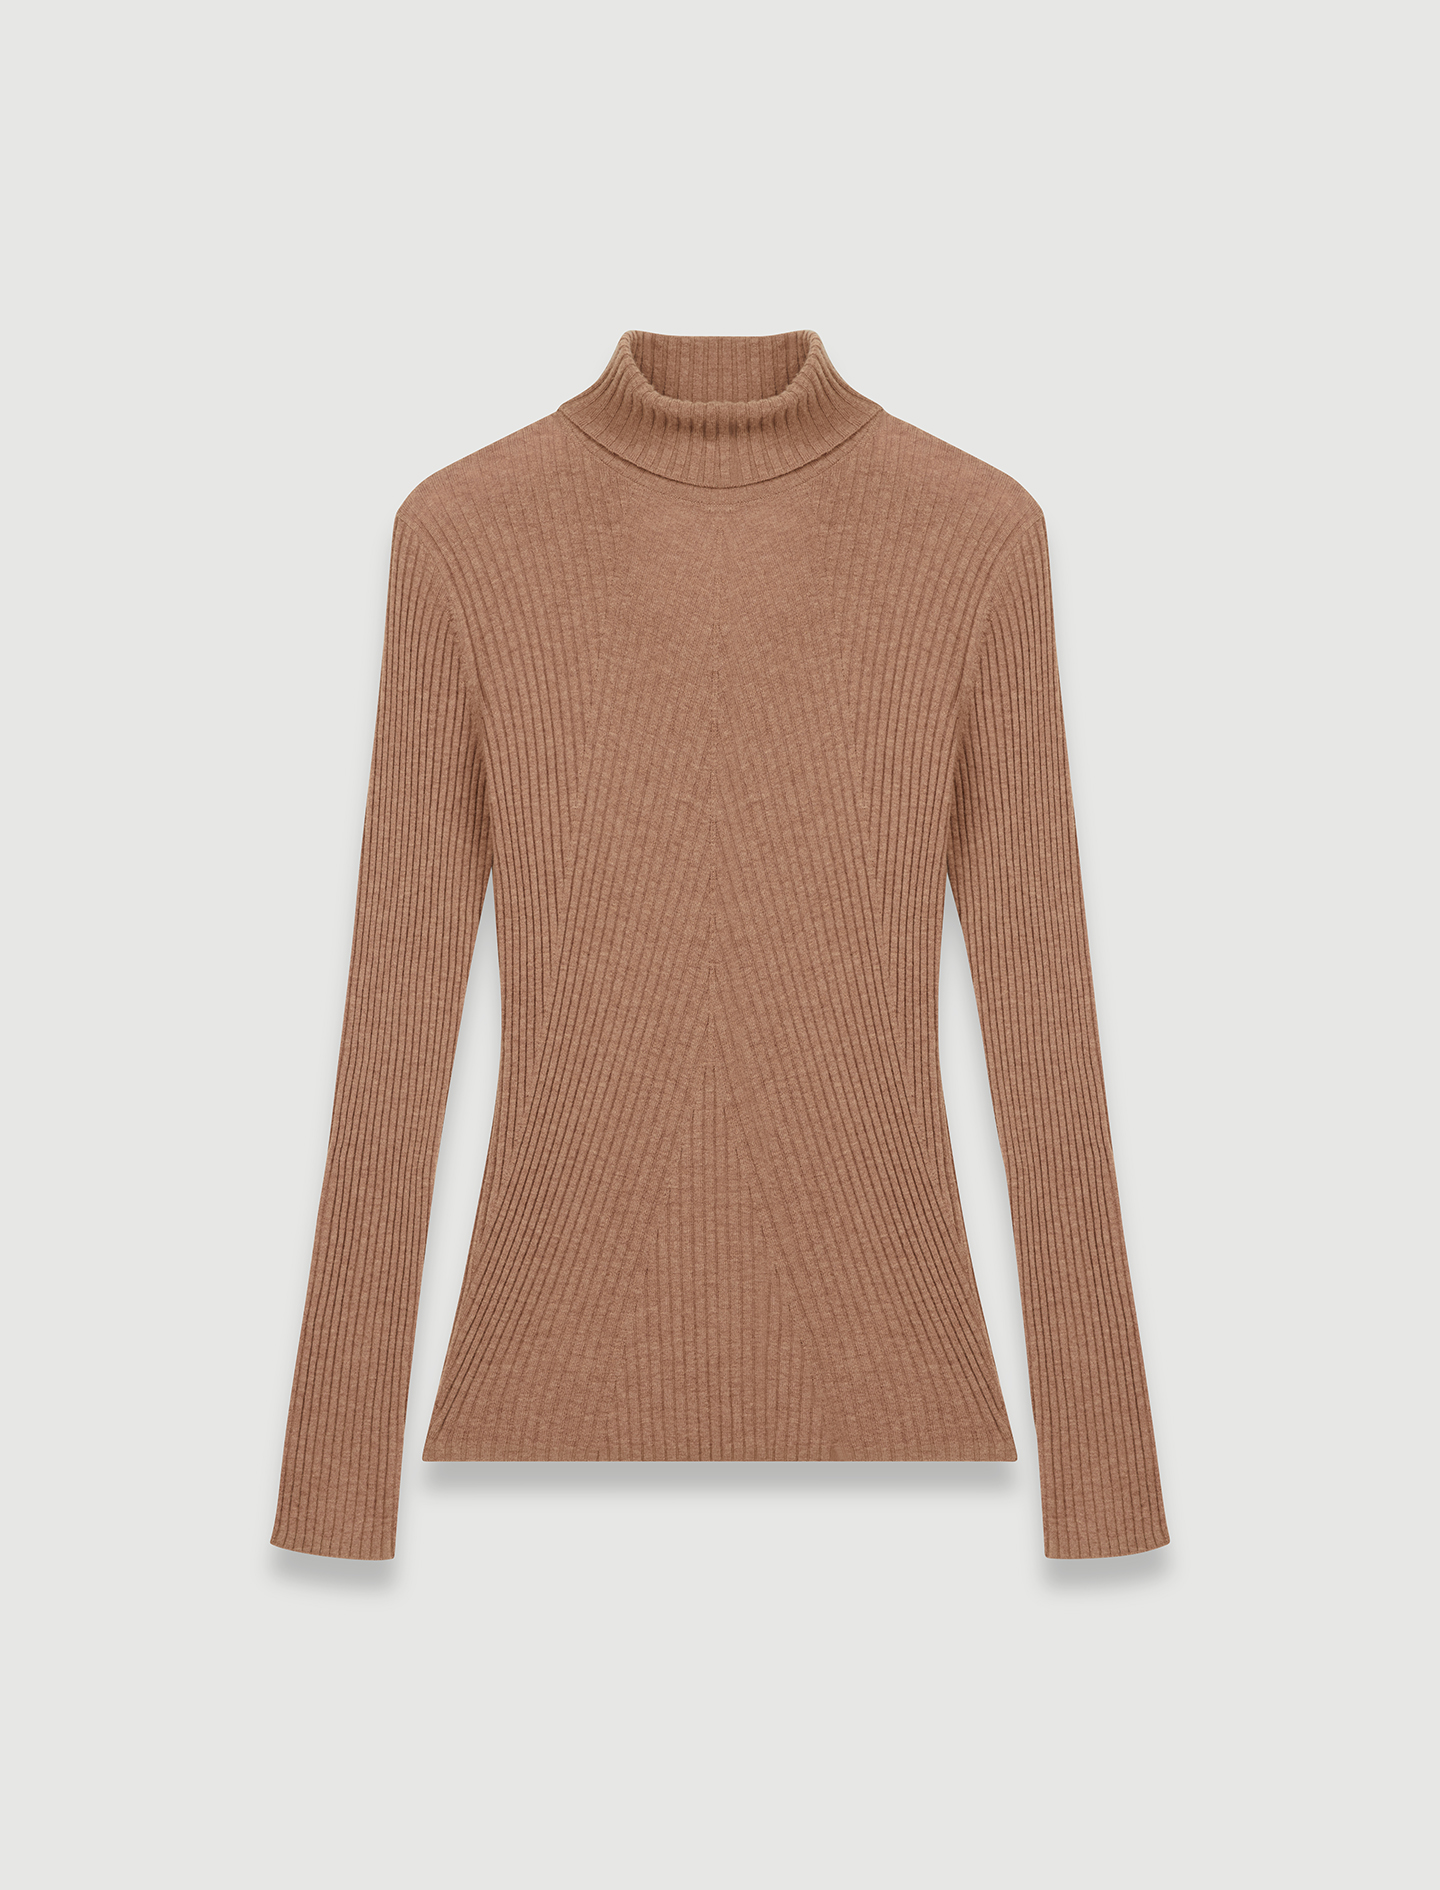 High neck fine knit camel sweater  - Camel